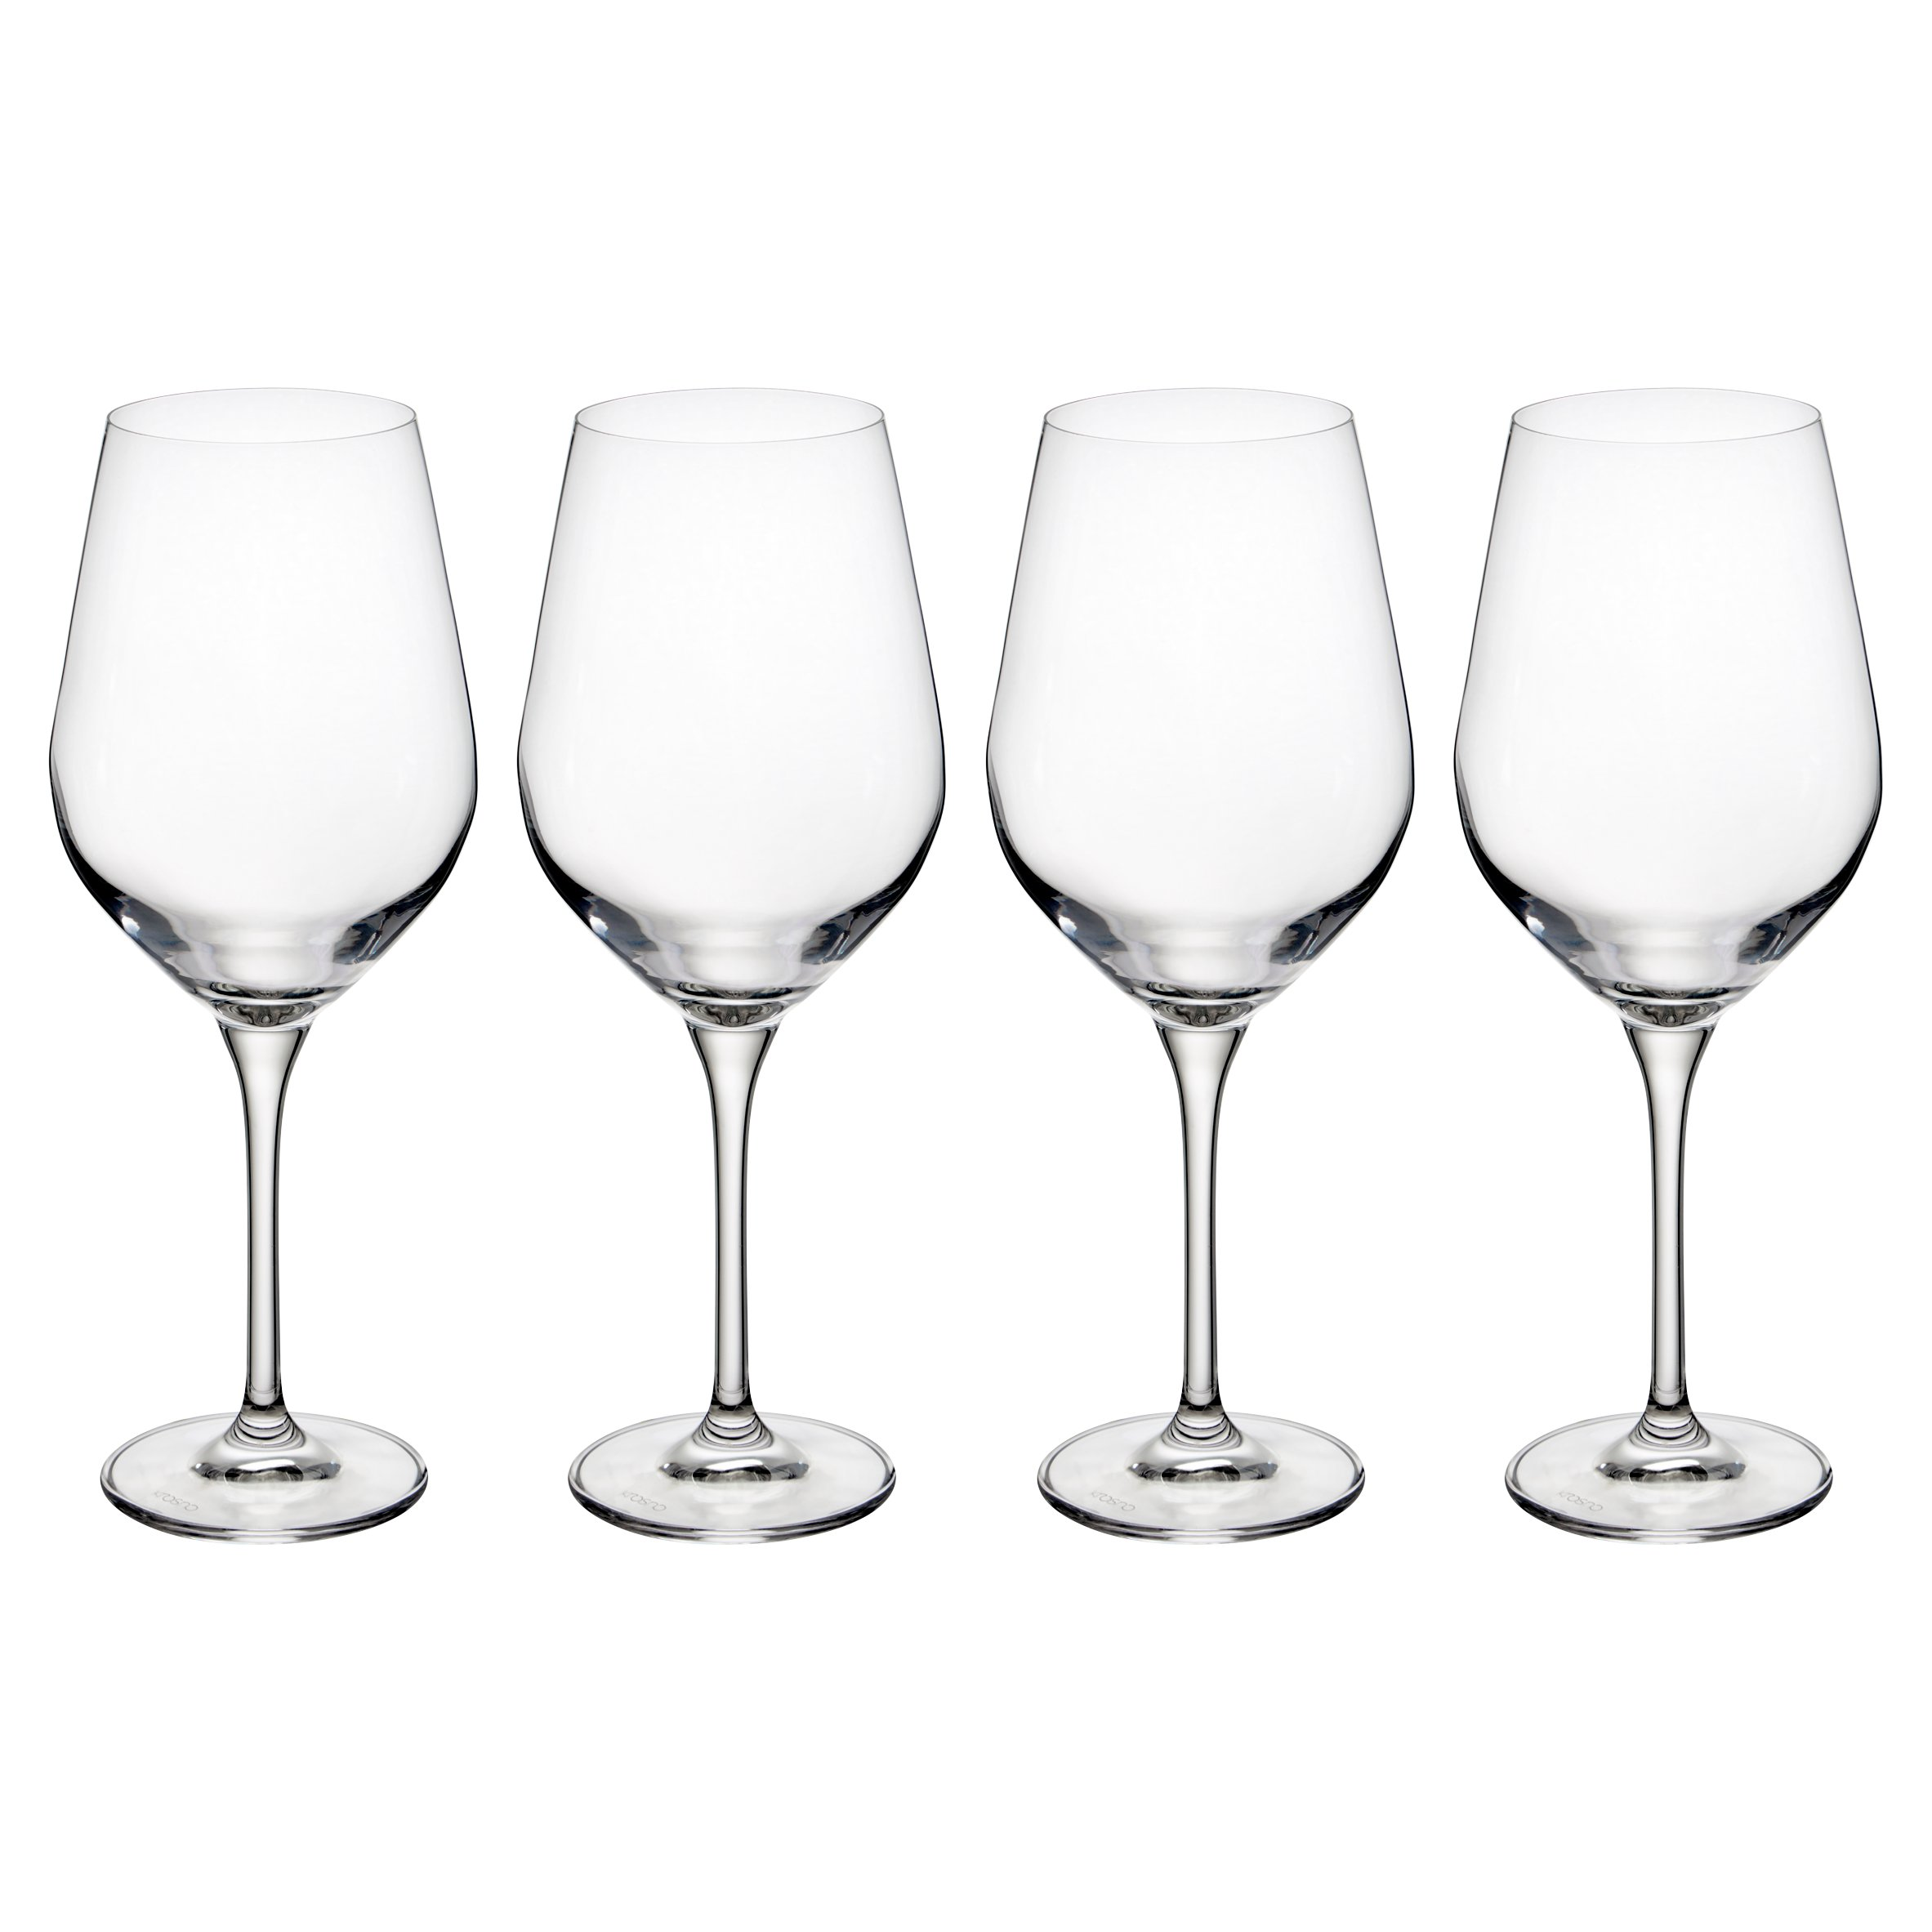 F & I New Red Wine Crystal Glass 4 Pack